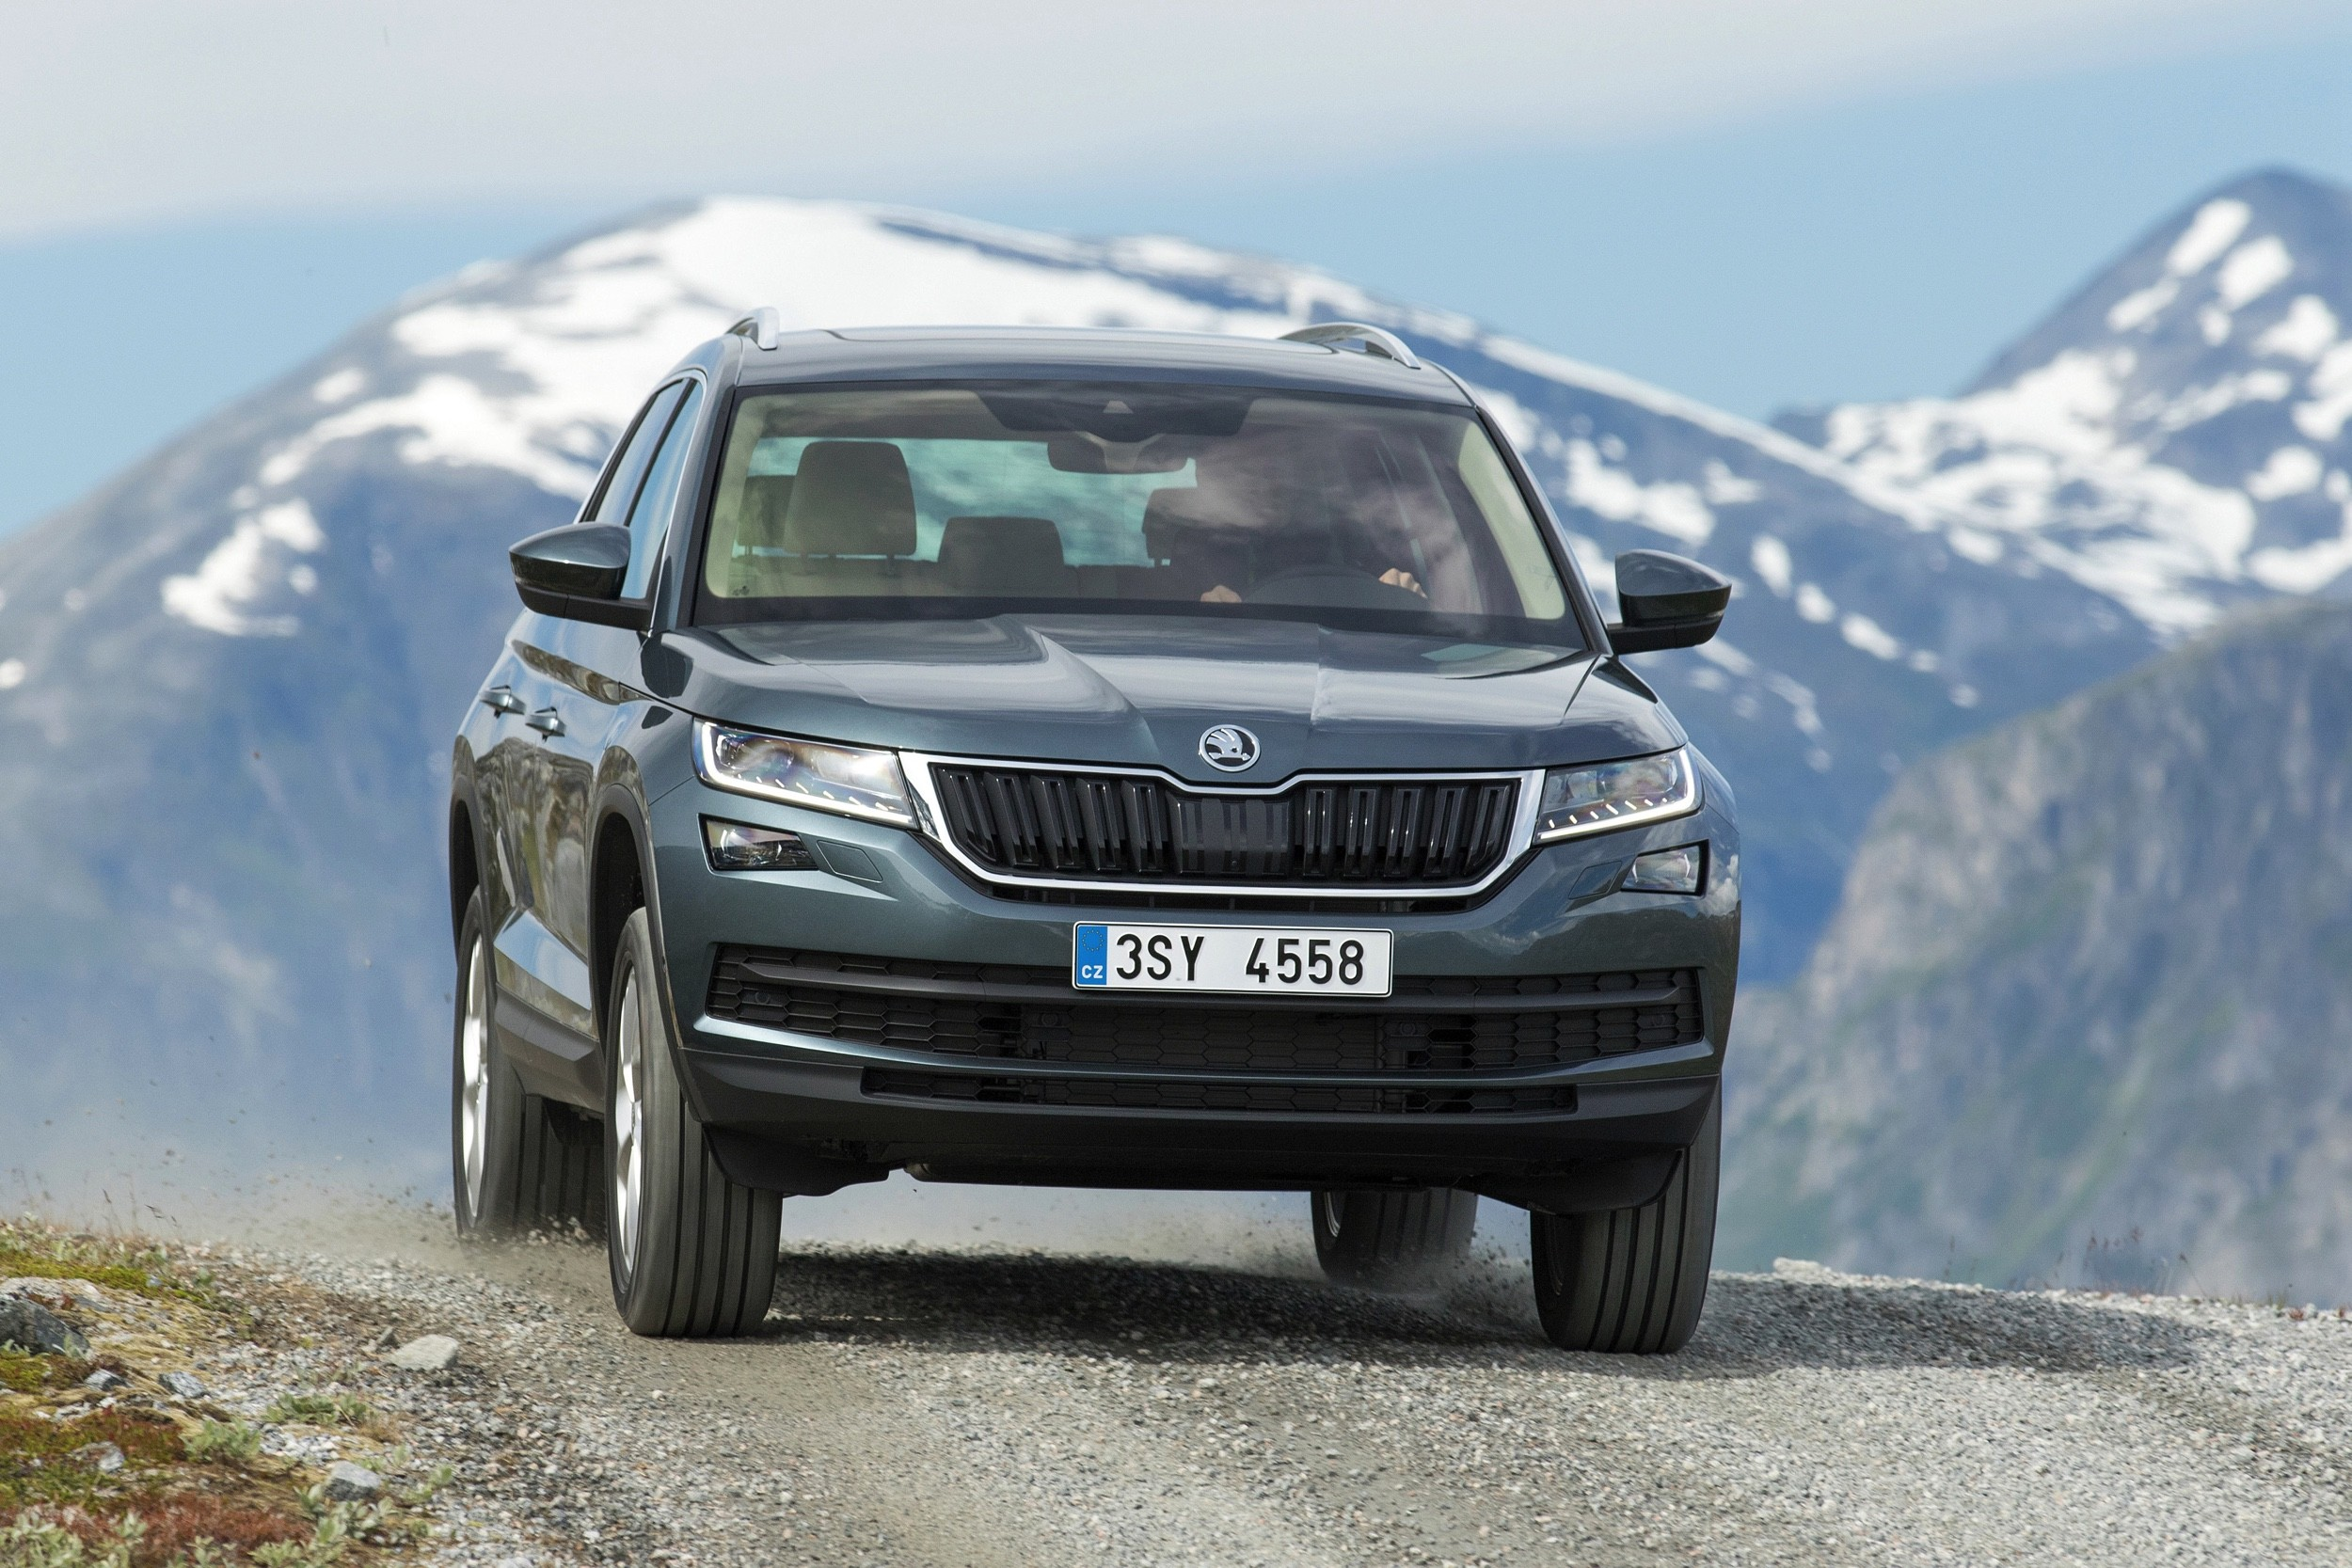 Autovisie Magazine 24 -2- Sneak Preview - Skoda Kodiaq